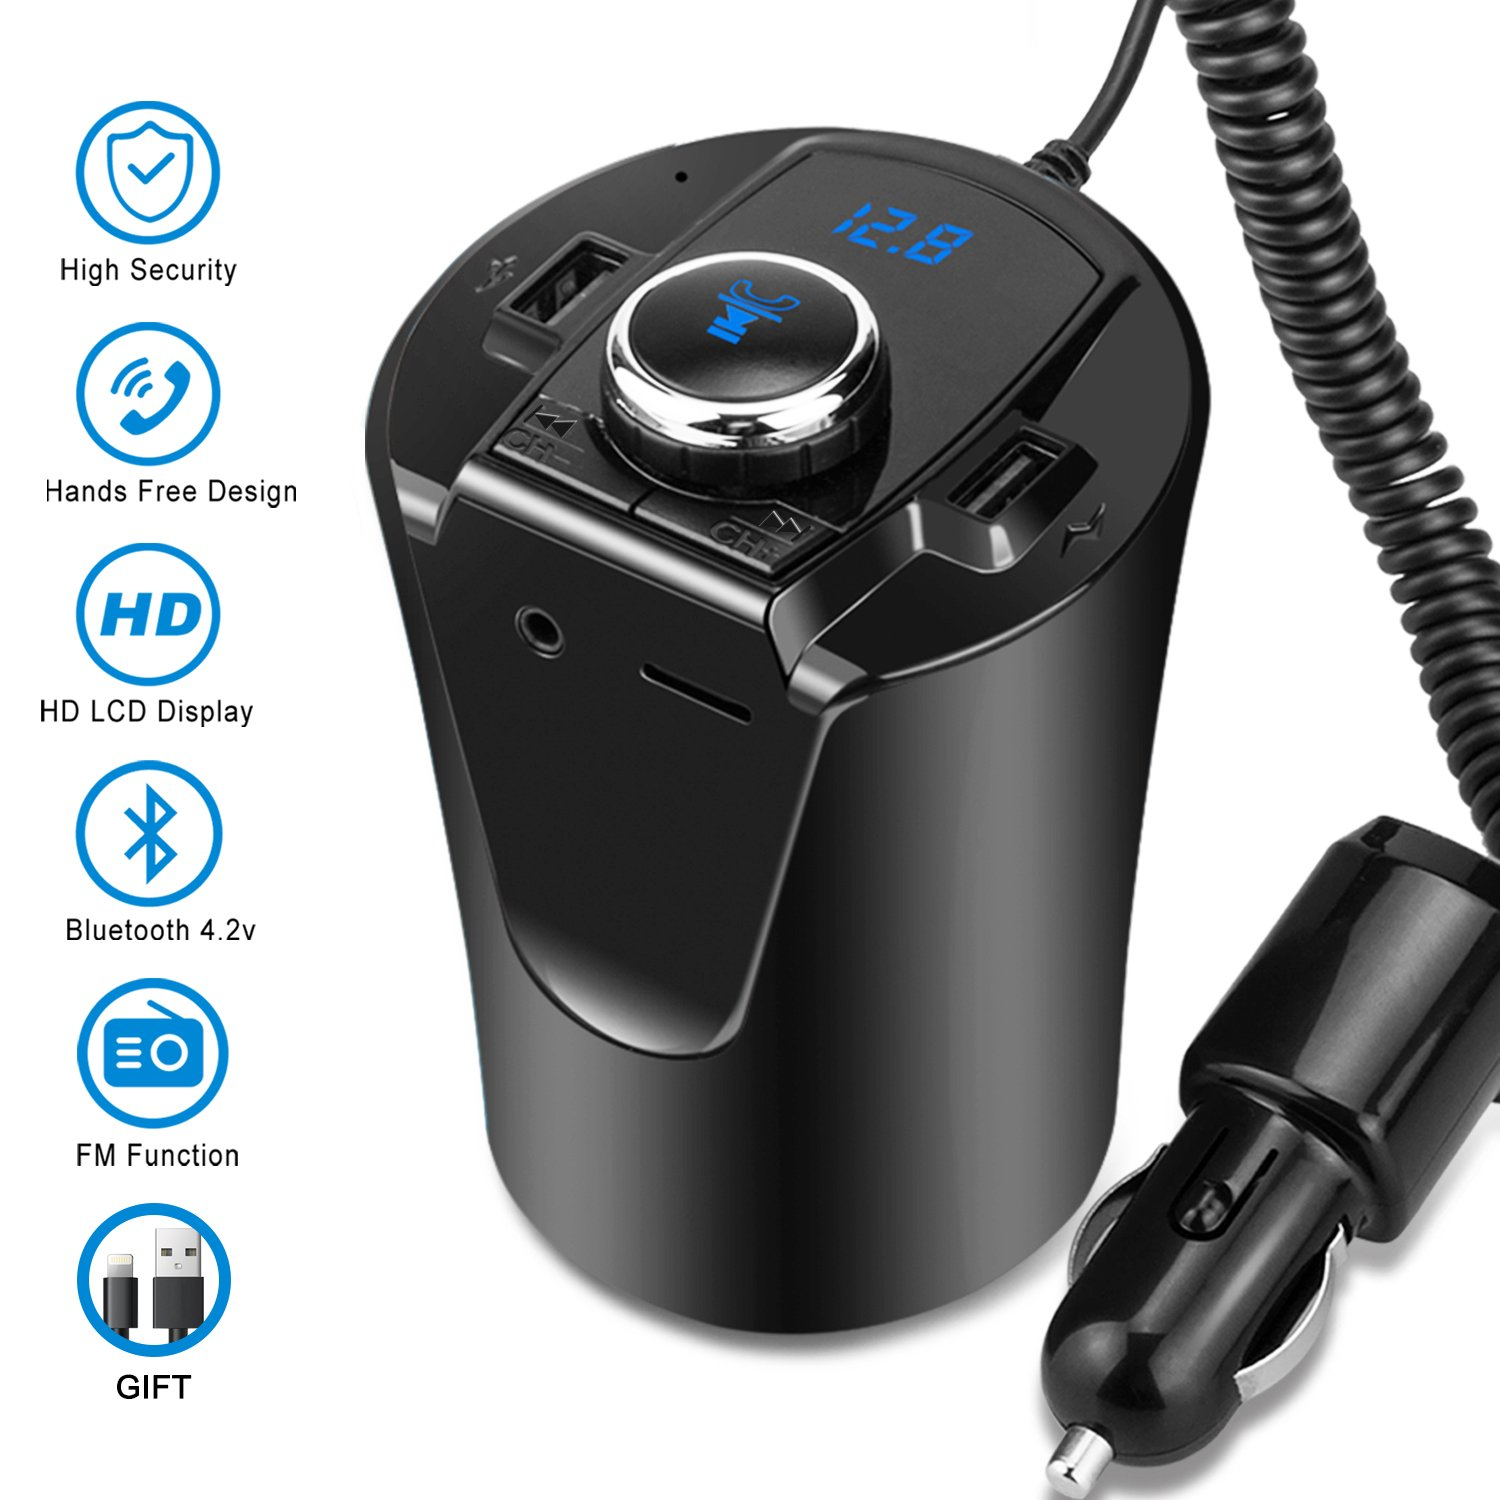 Wireless Bluetooth Fm Transmitter Mp3 Usb Car Radio Aux Circuit Diagram Simple Adapter Receiver For Phone Iphone Charging Hands Free Calling Black Cell